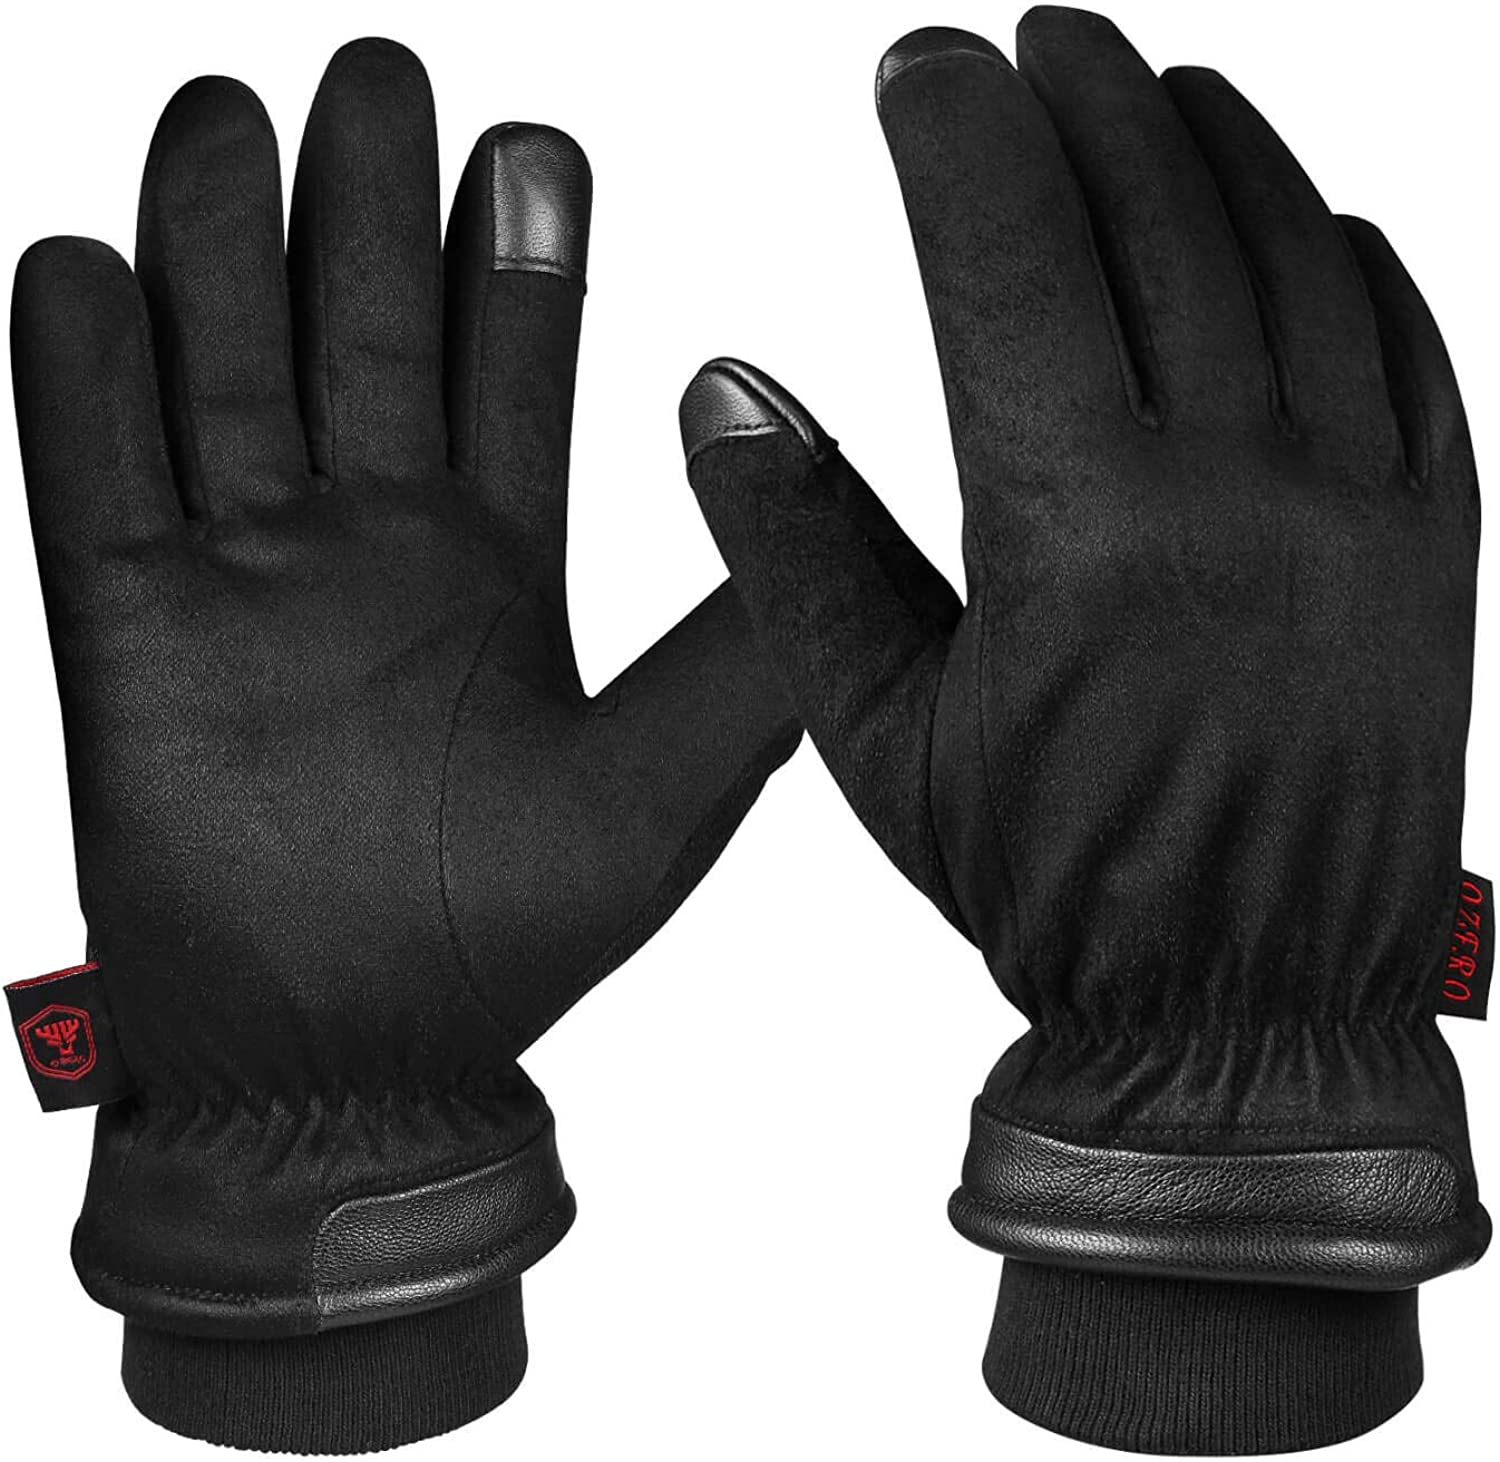 OZERO Mens Winter Gloves,-30 ℉ Waterproof Driving Glove Thermal Gift in Cold  Weather: Amazon.ca: Luggage & Bags